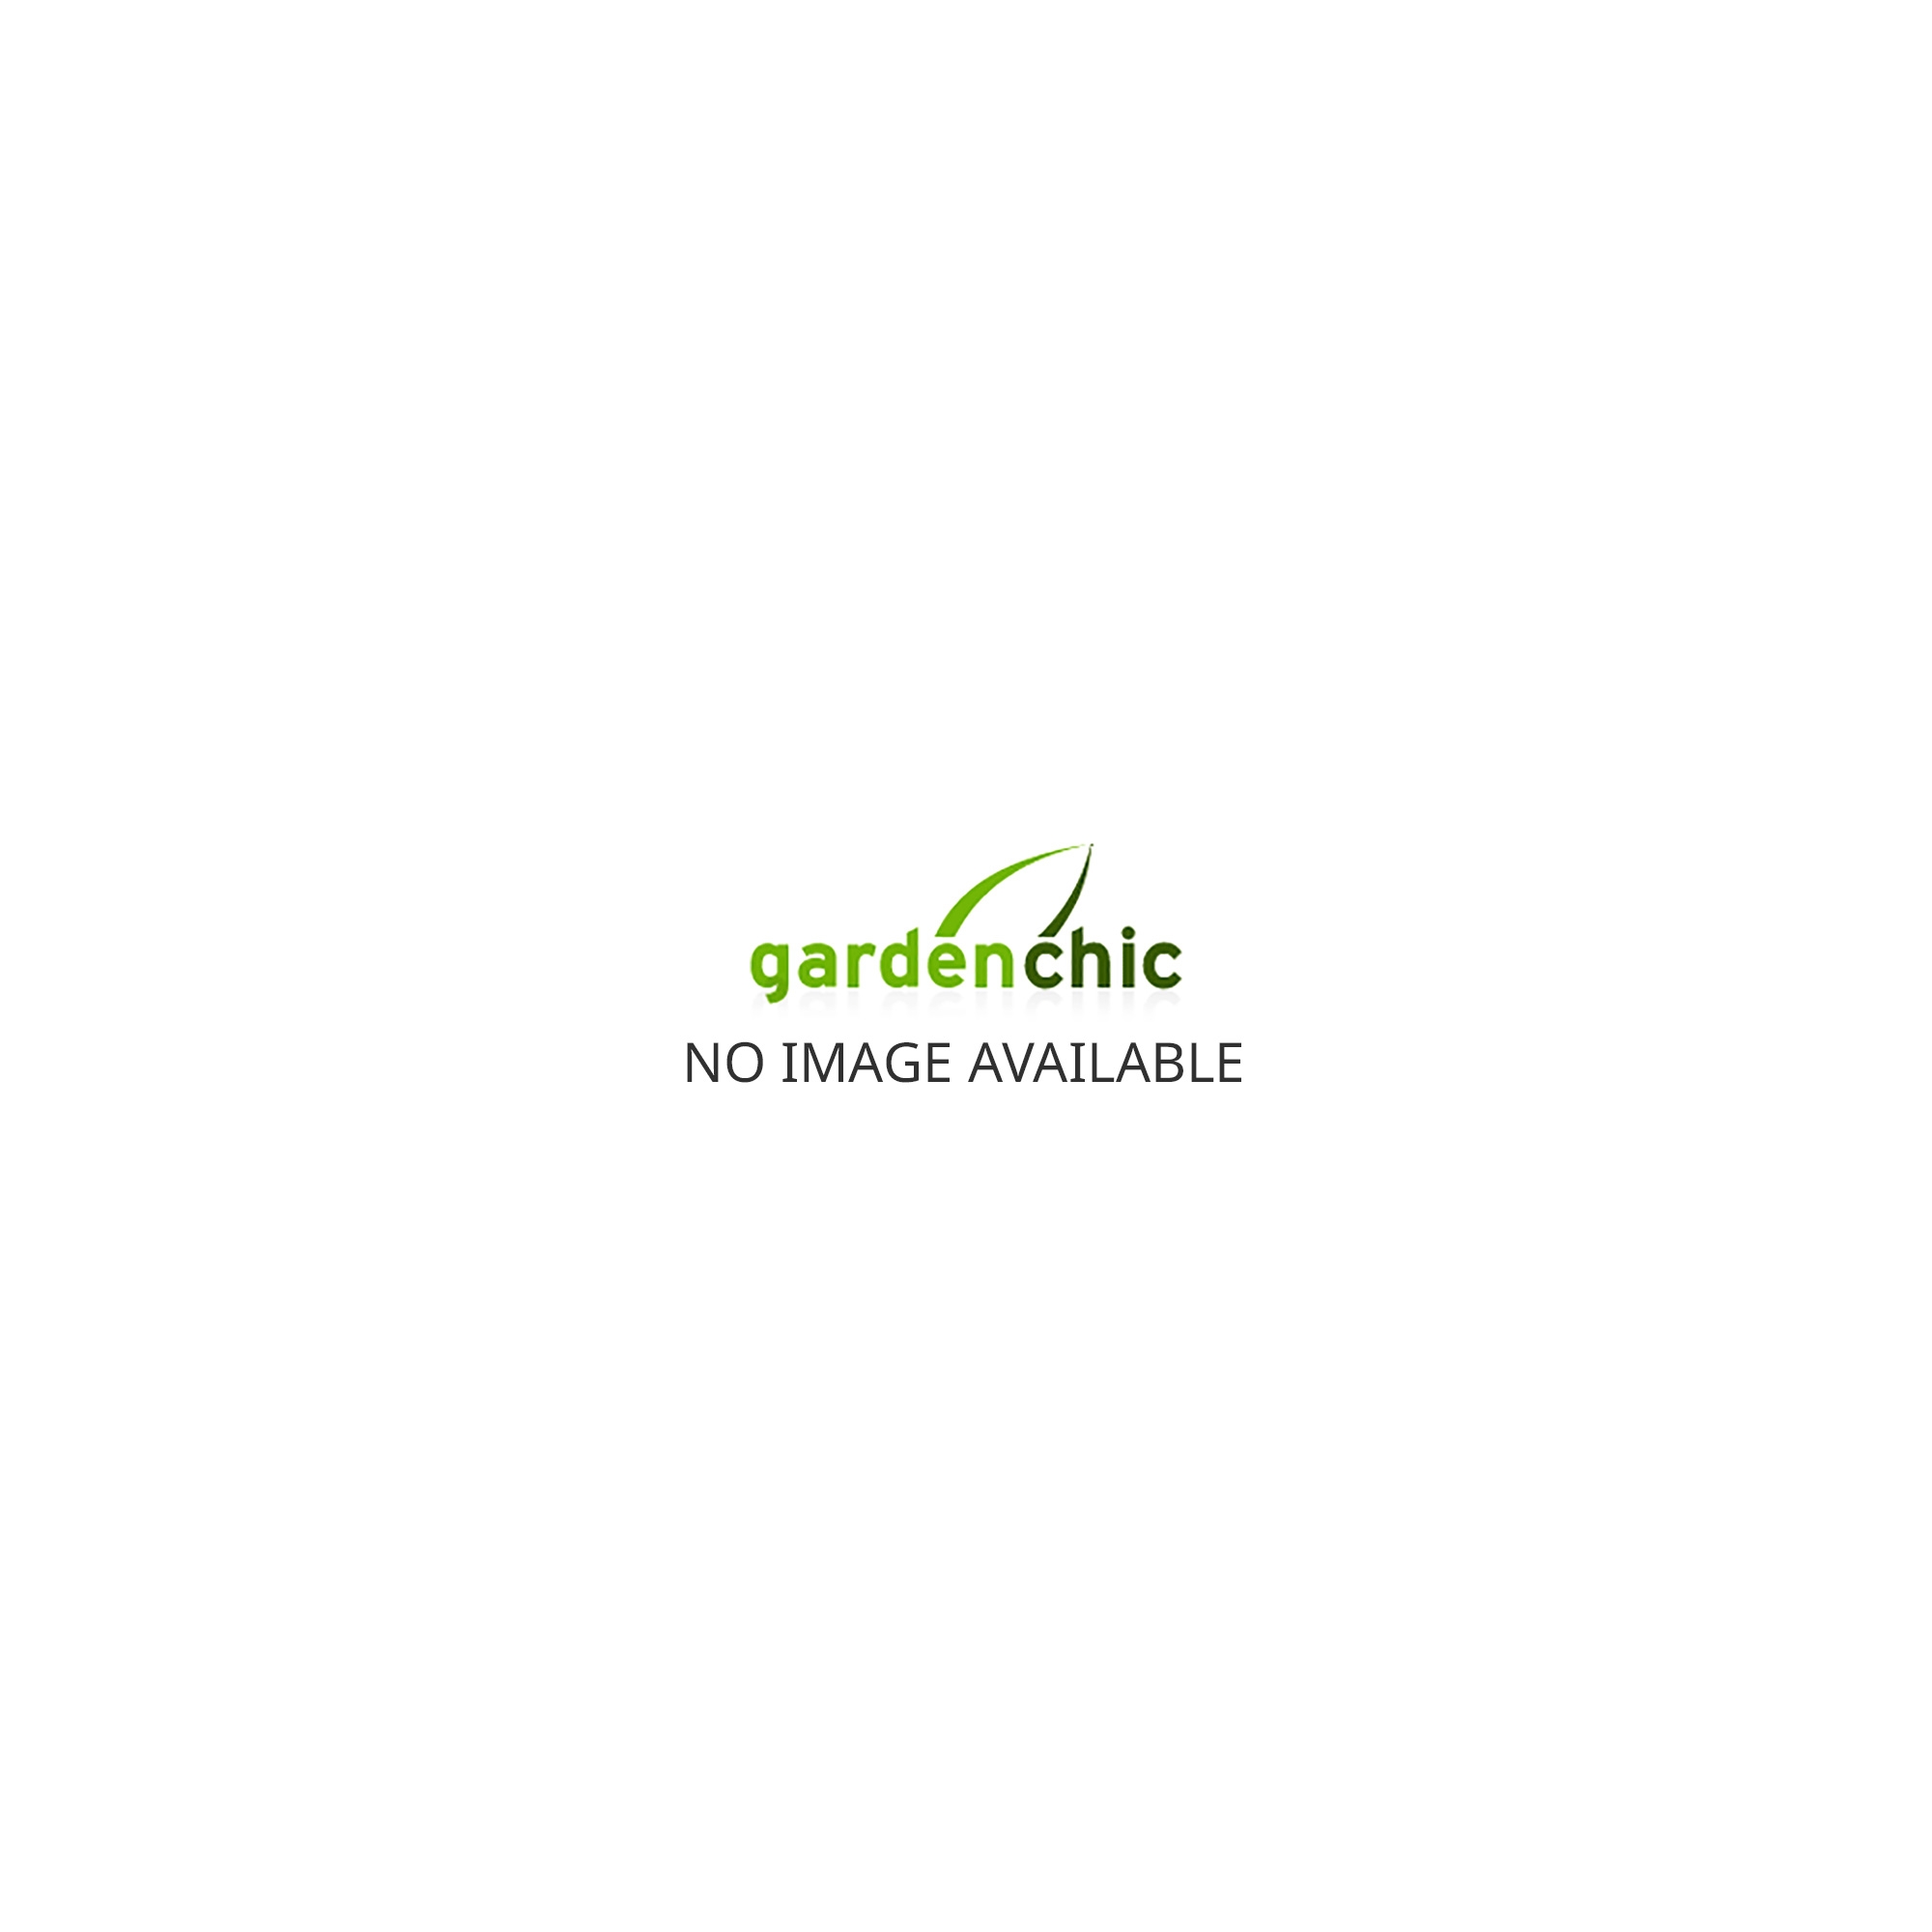 IDA 1300 Wall Garden 6ft x 2ft Greenhouse - Green FREE Matching Base until 31st July 2018